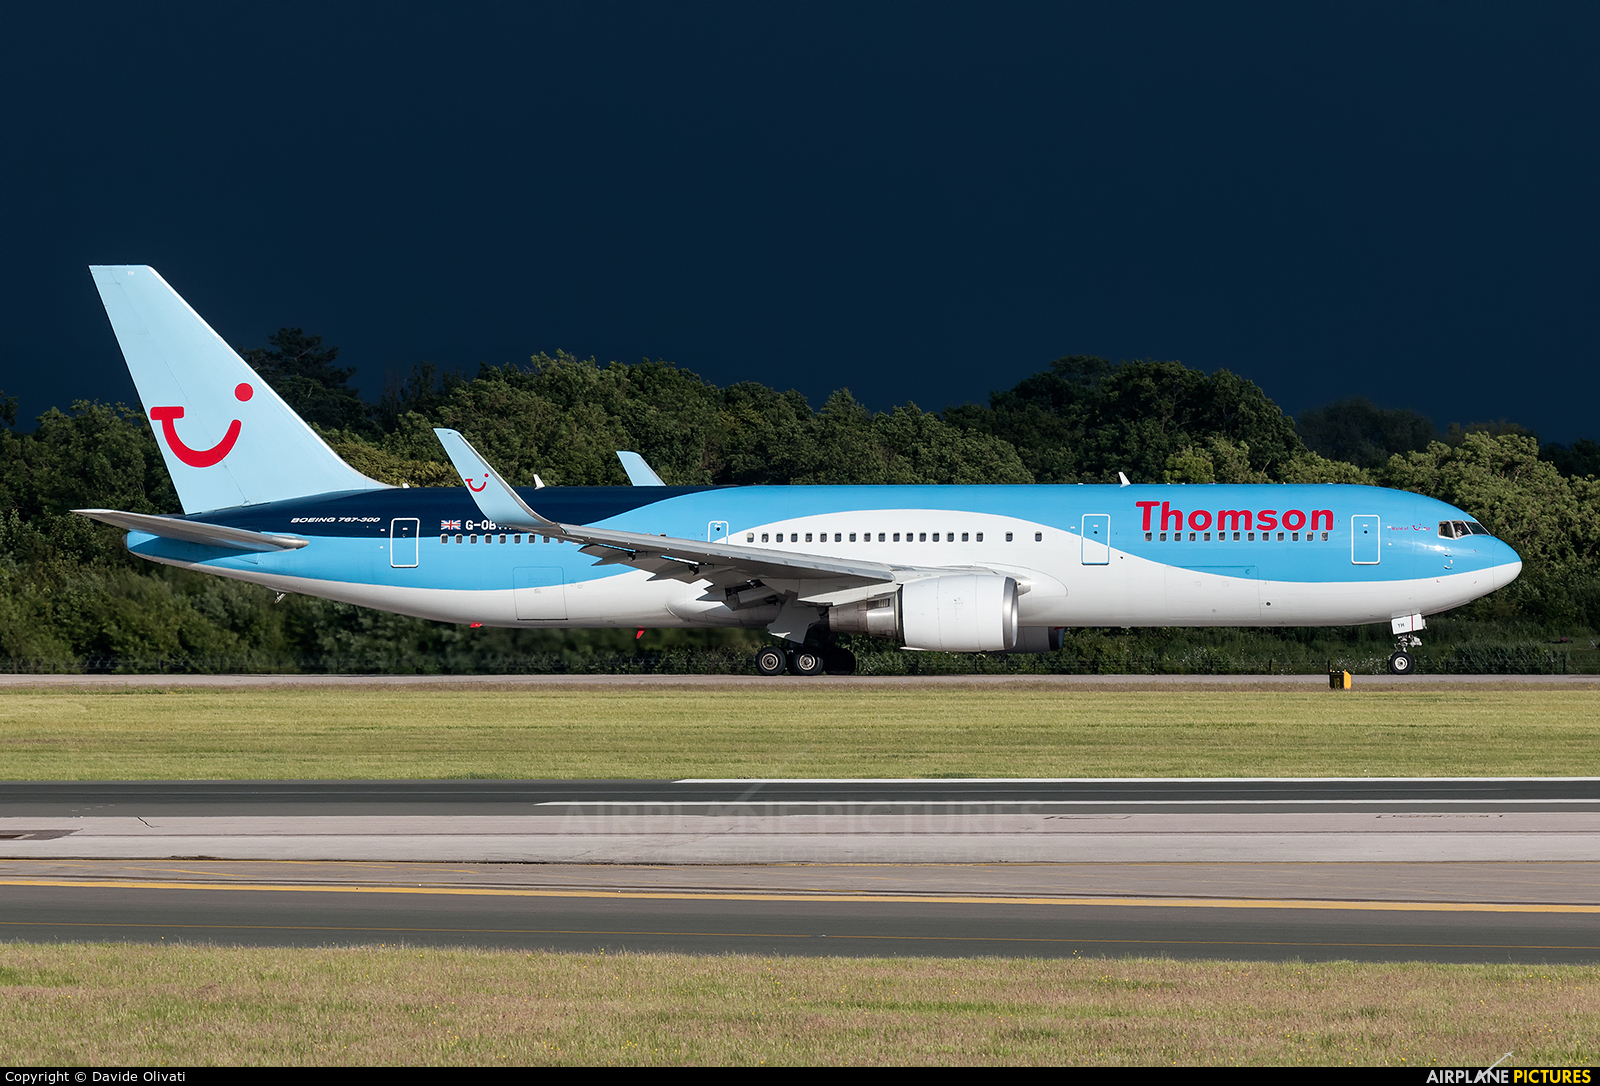 Thomson/Thomsonfly G-OBYH aircraft at Manchester